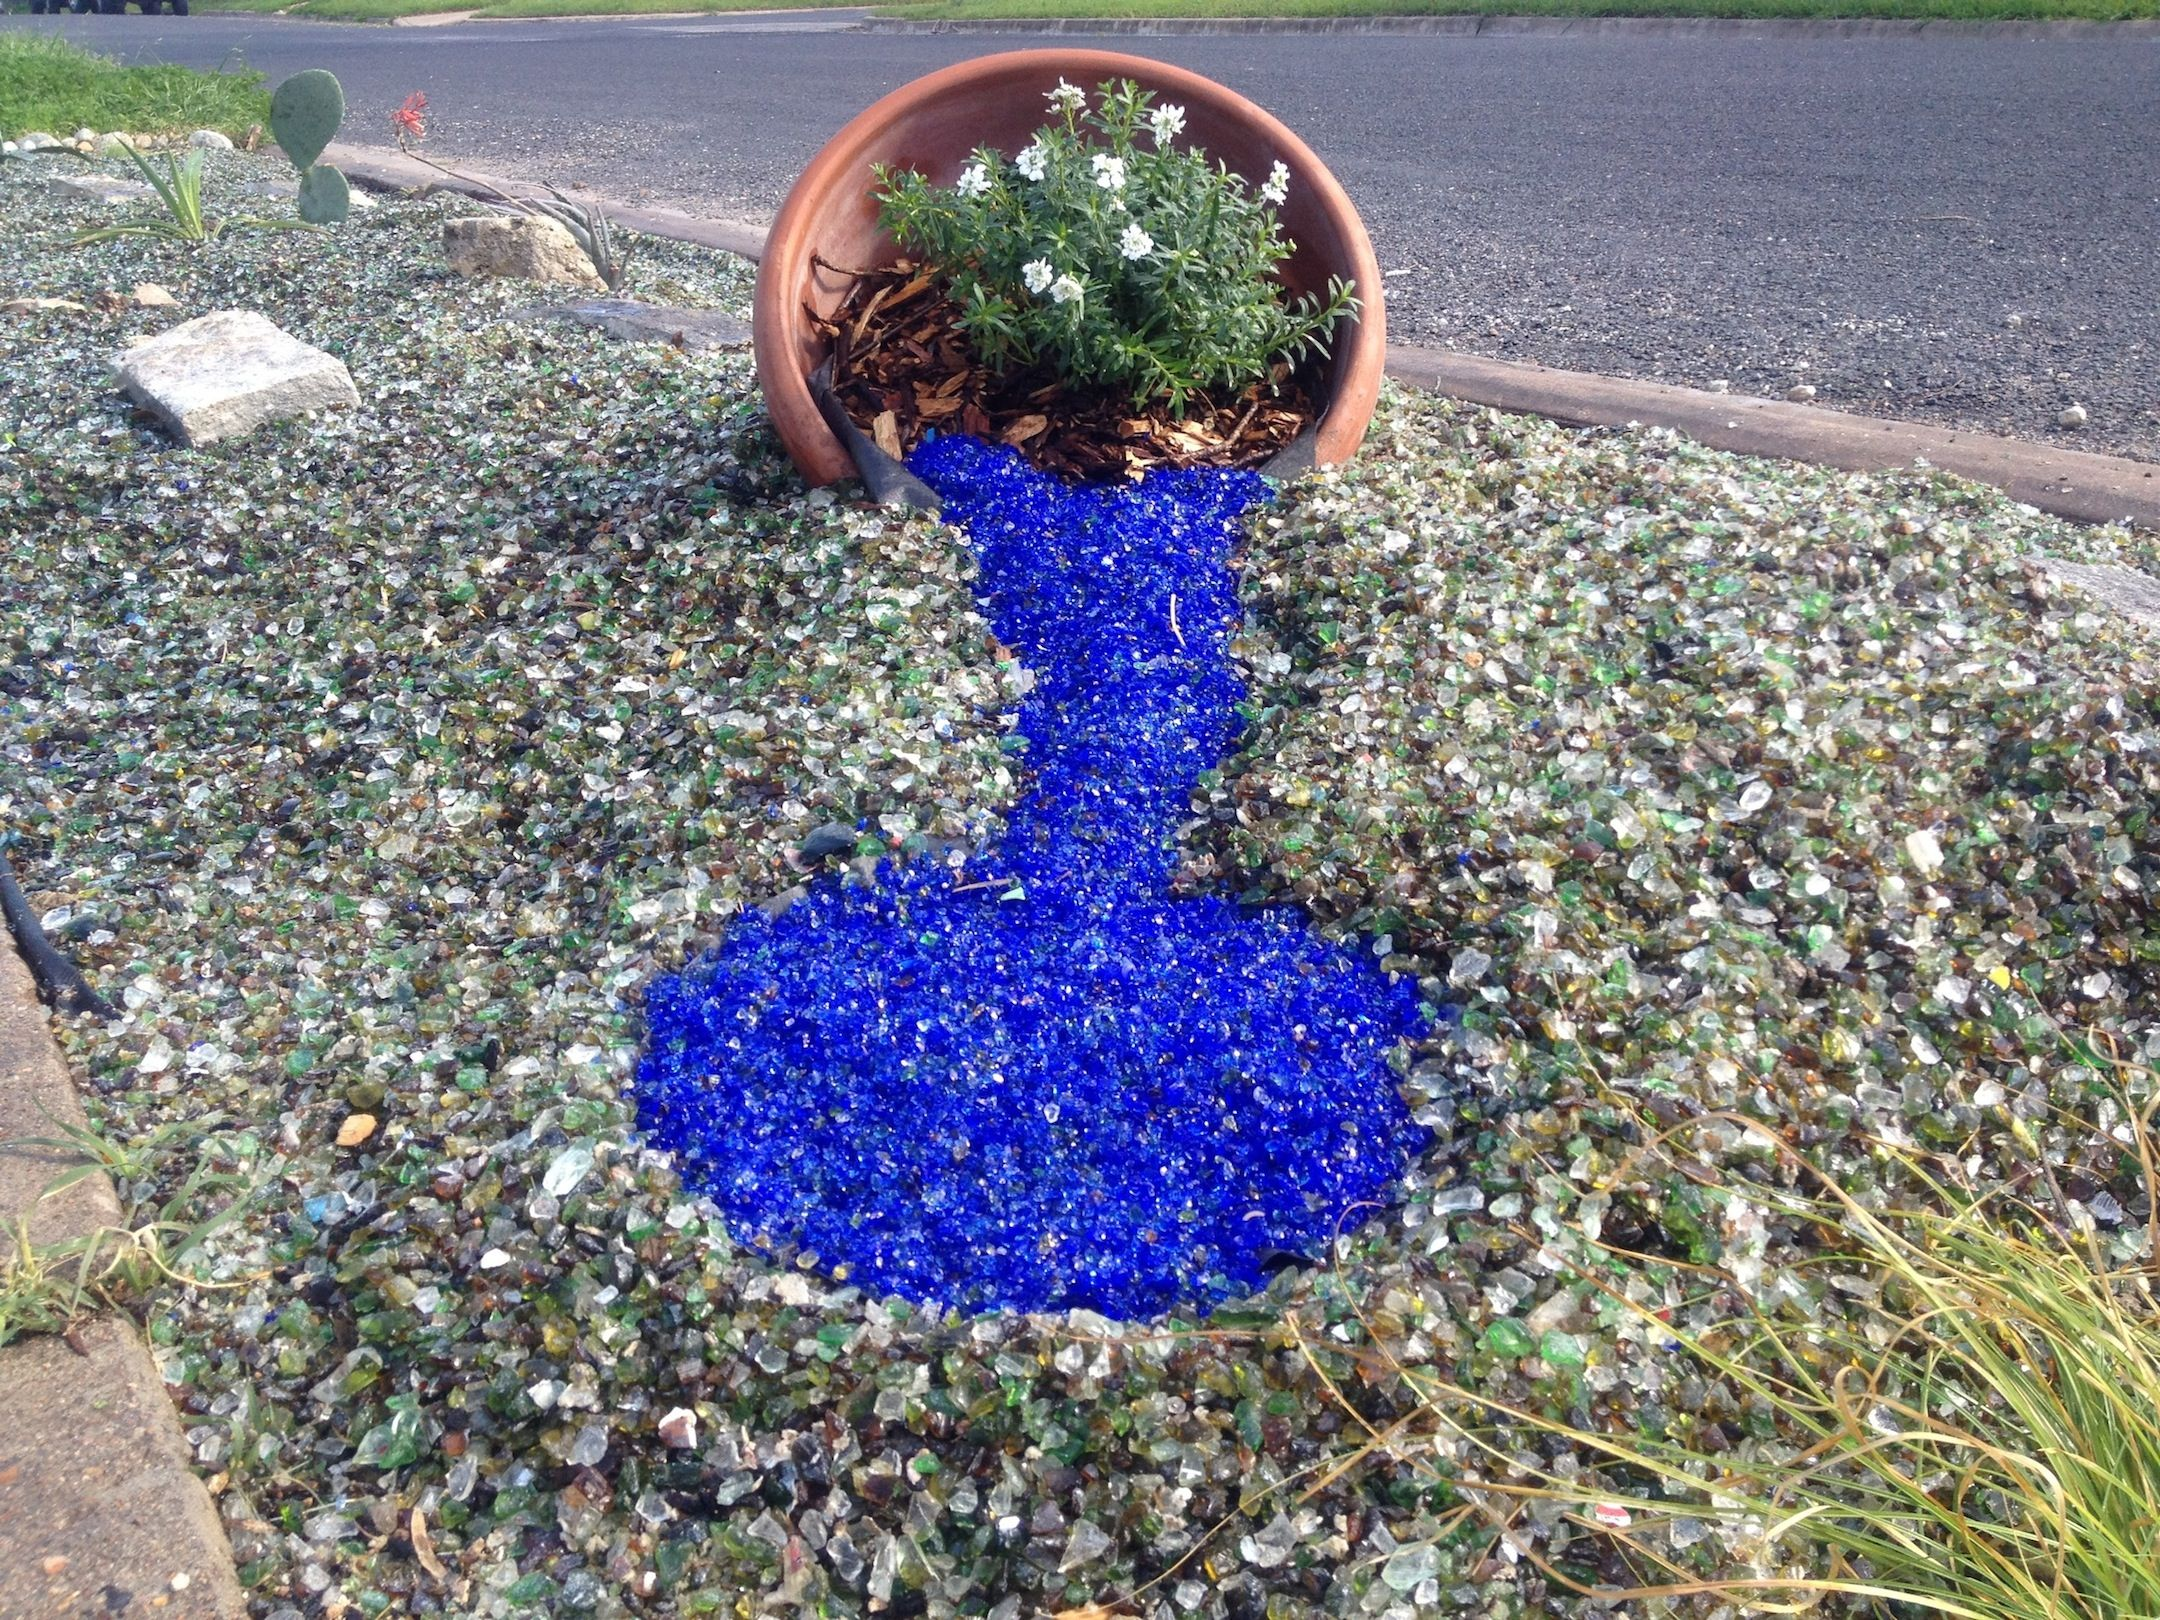 Blue recycled glass landscape glass mulch landscape for Recycled garden ideas images